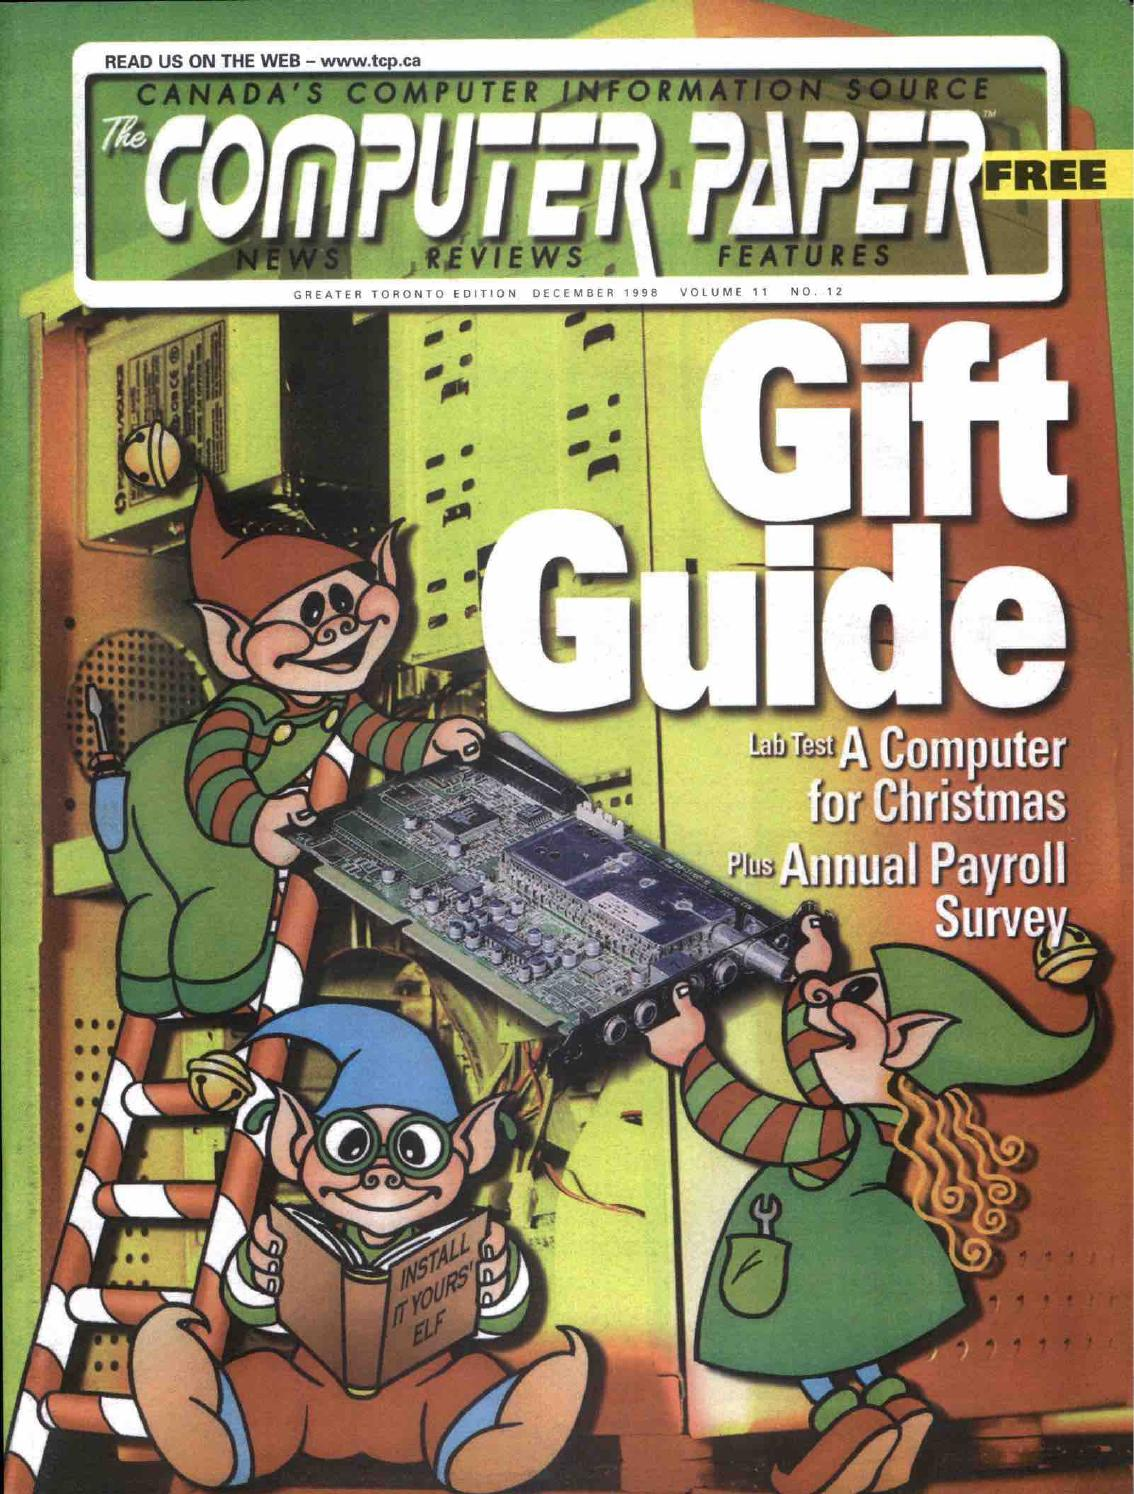 7401af78974 1998 12 The Computer Paper - Ontario Edition by The Computer Paper - issuu